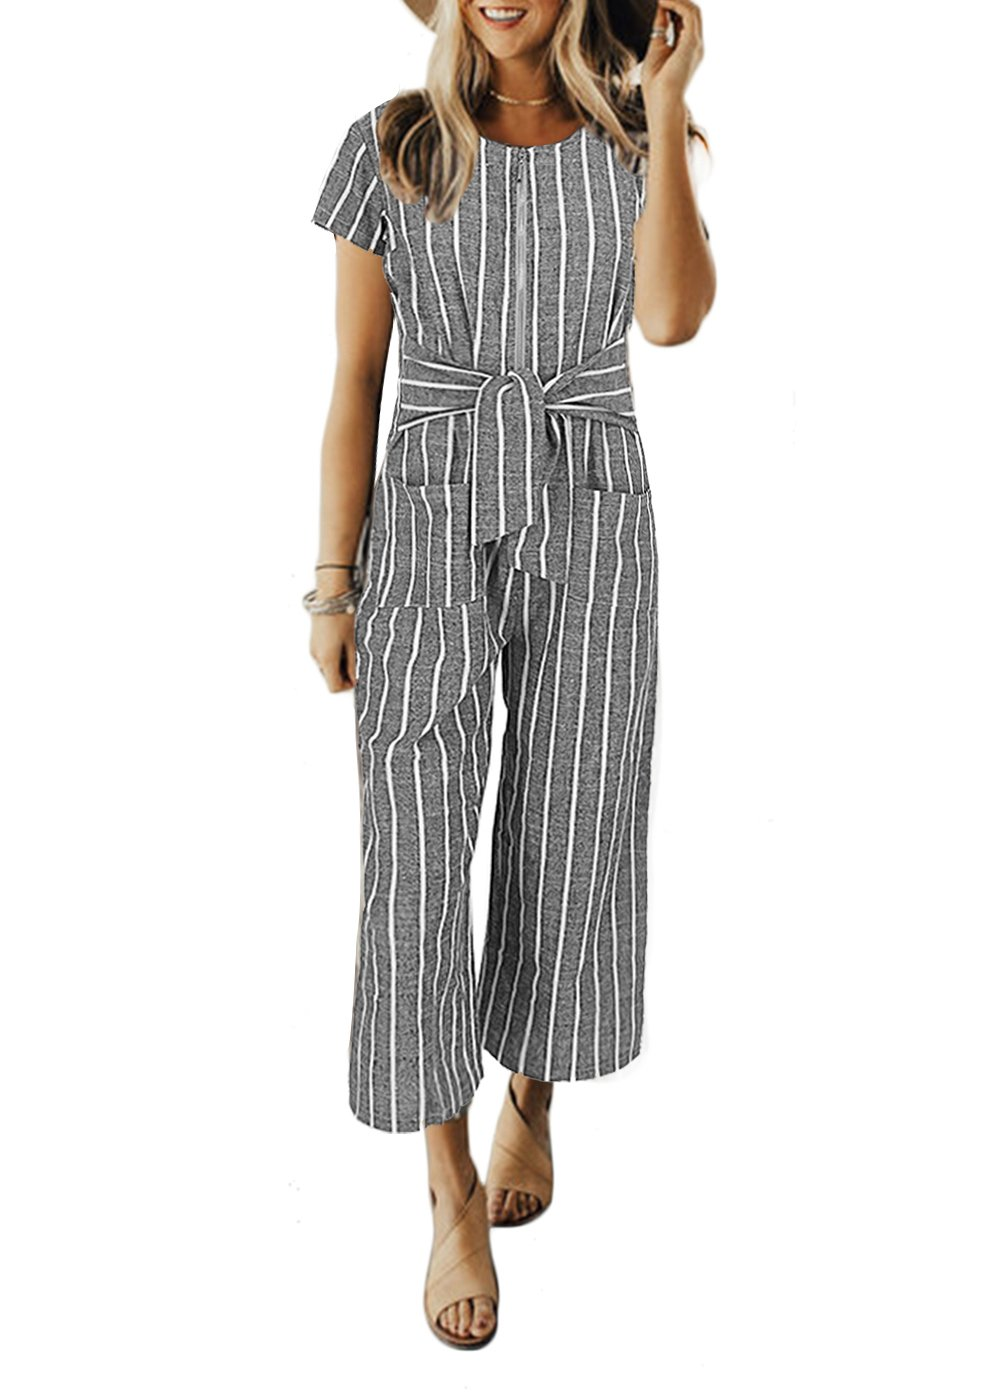 Cosygal Women Striped Linen Short Sleeves Wide Leg Jumpsuit Romper with Zip Pockets Belt